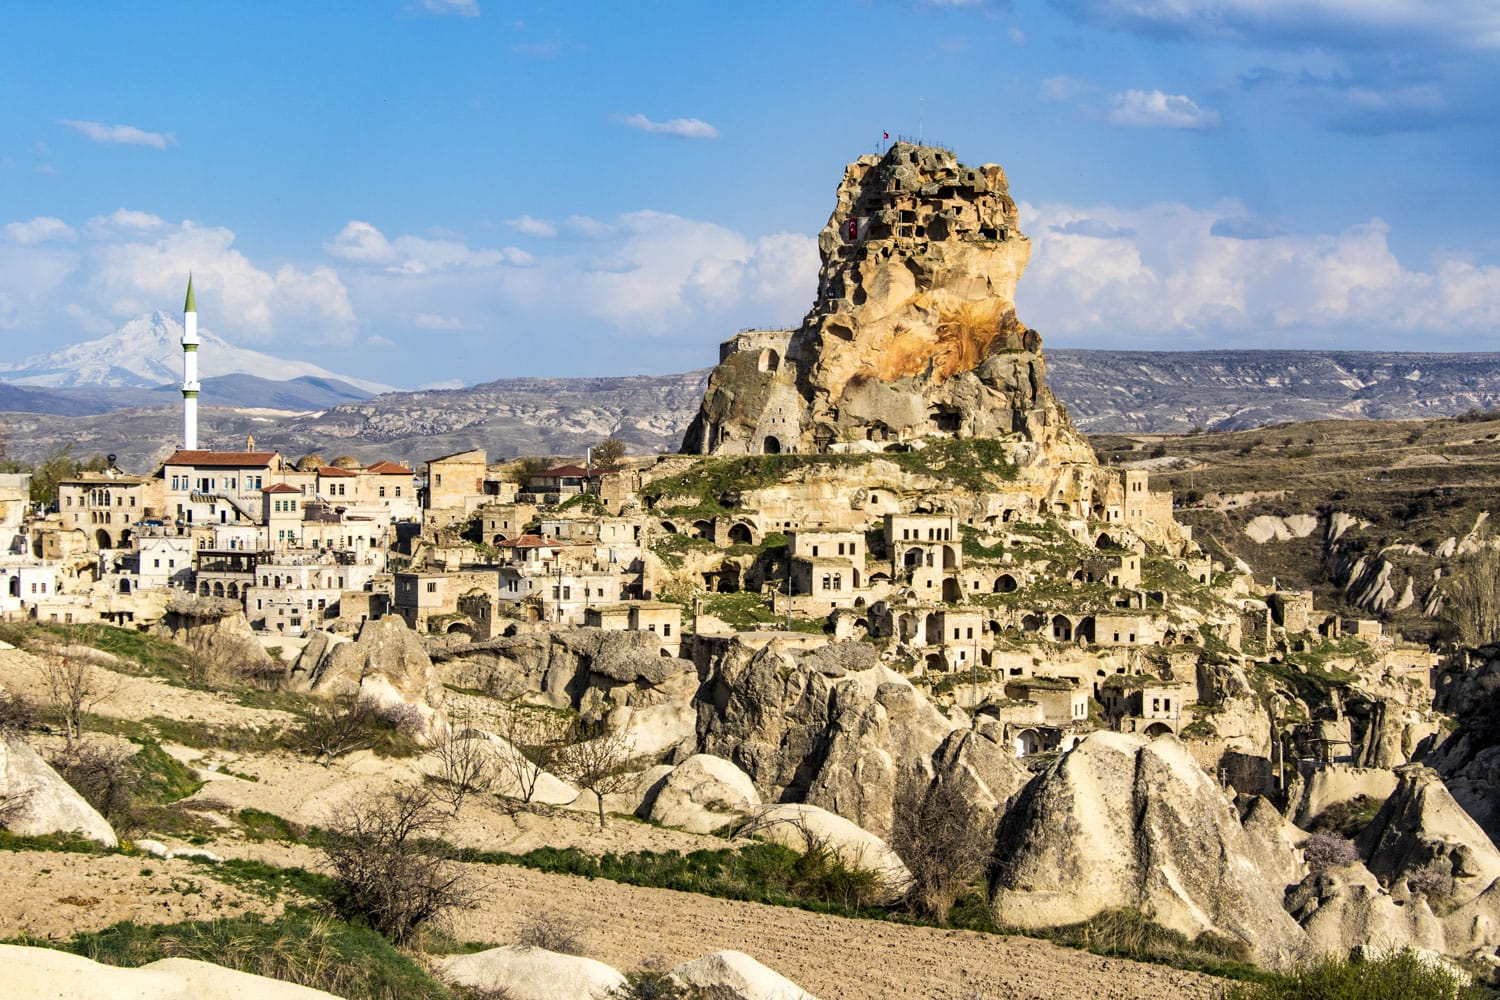 The ancient Ortahisar Castle in Cappadocia, in central Turkey is a major landmark